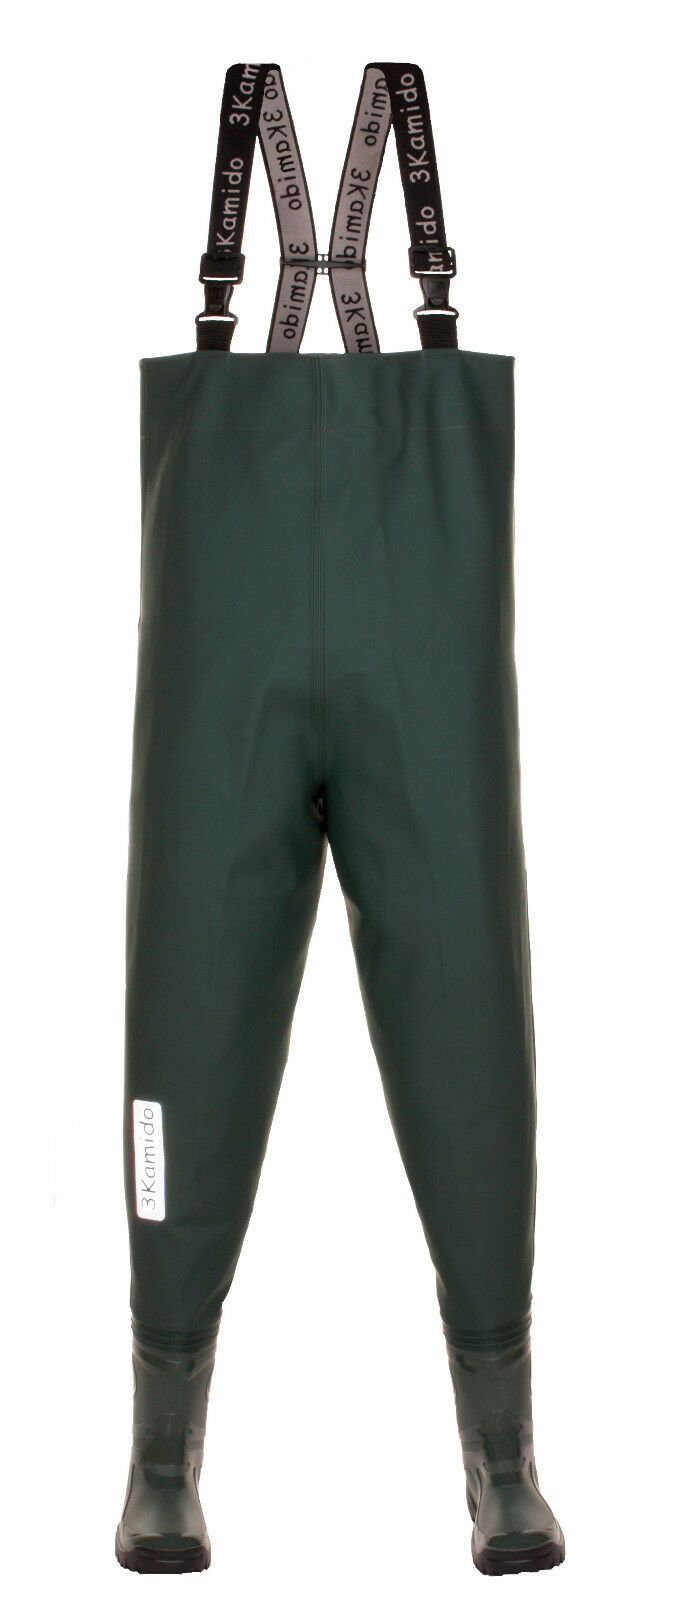 Green Waders for Youth Junior Young  Angler Trousers  save up to 30-50% off